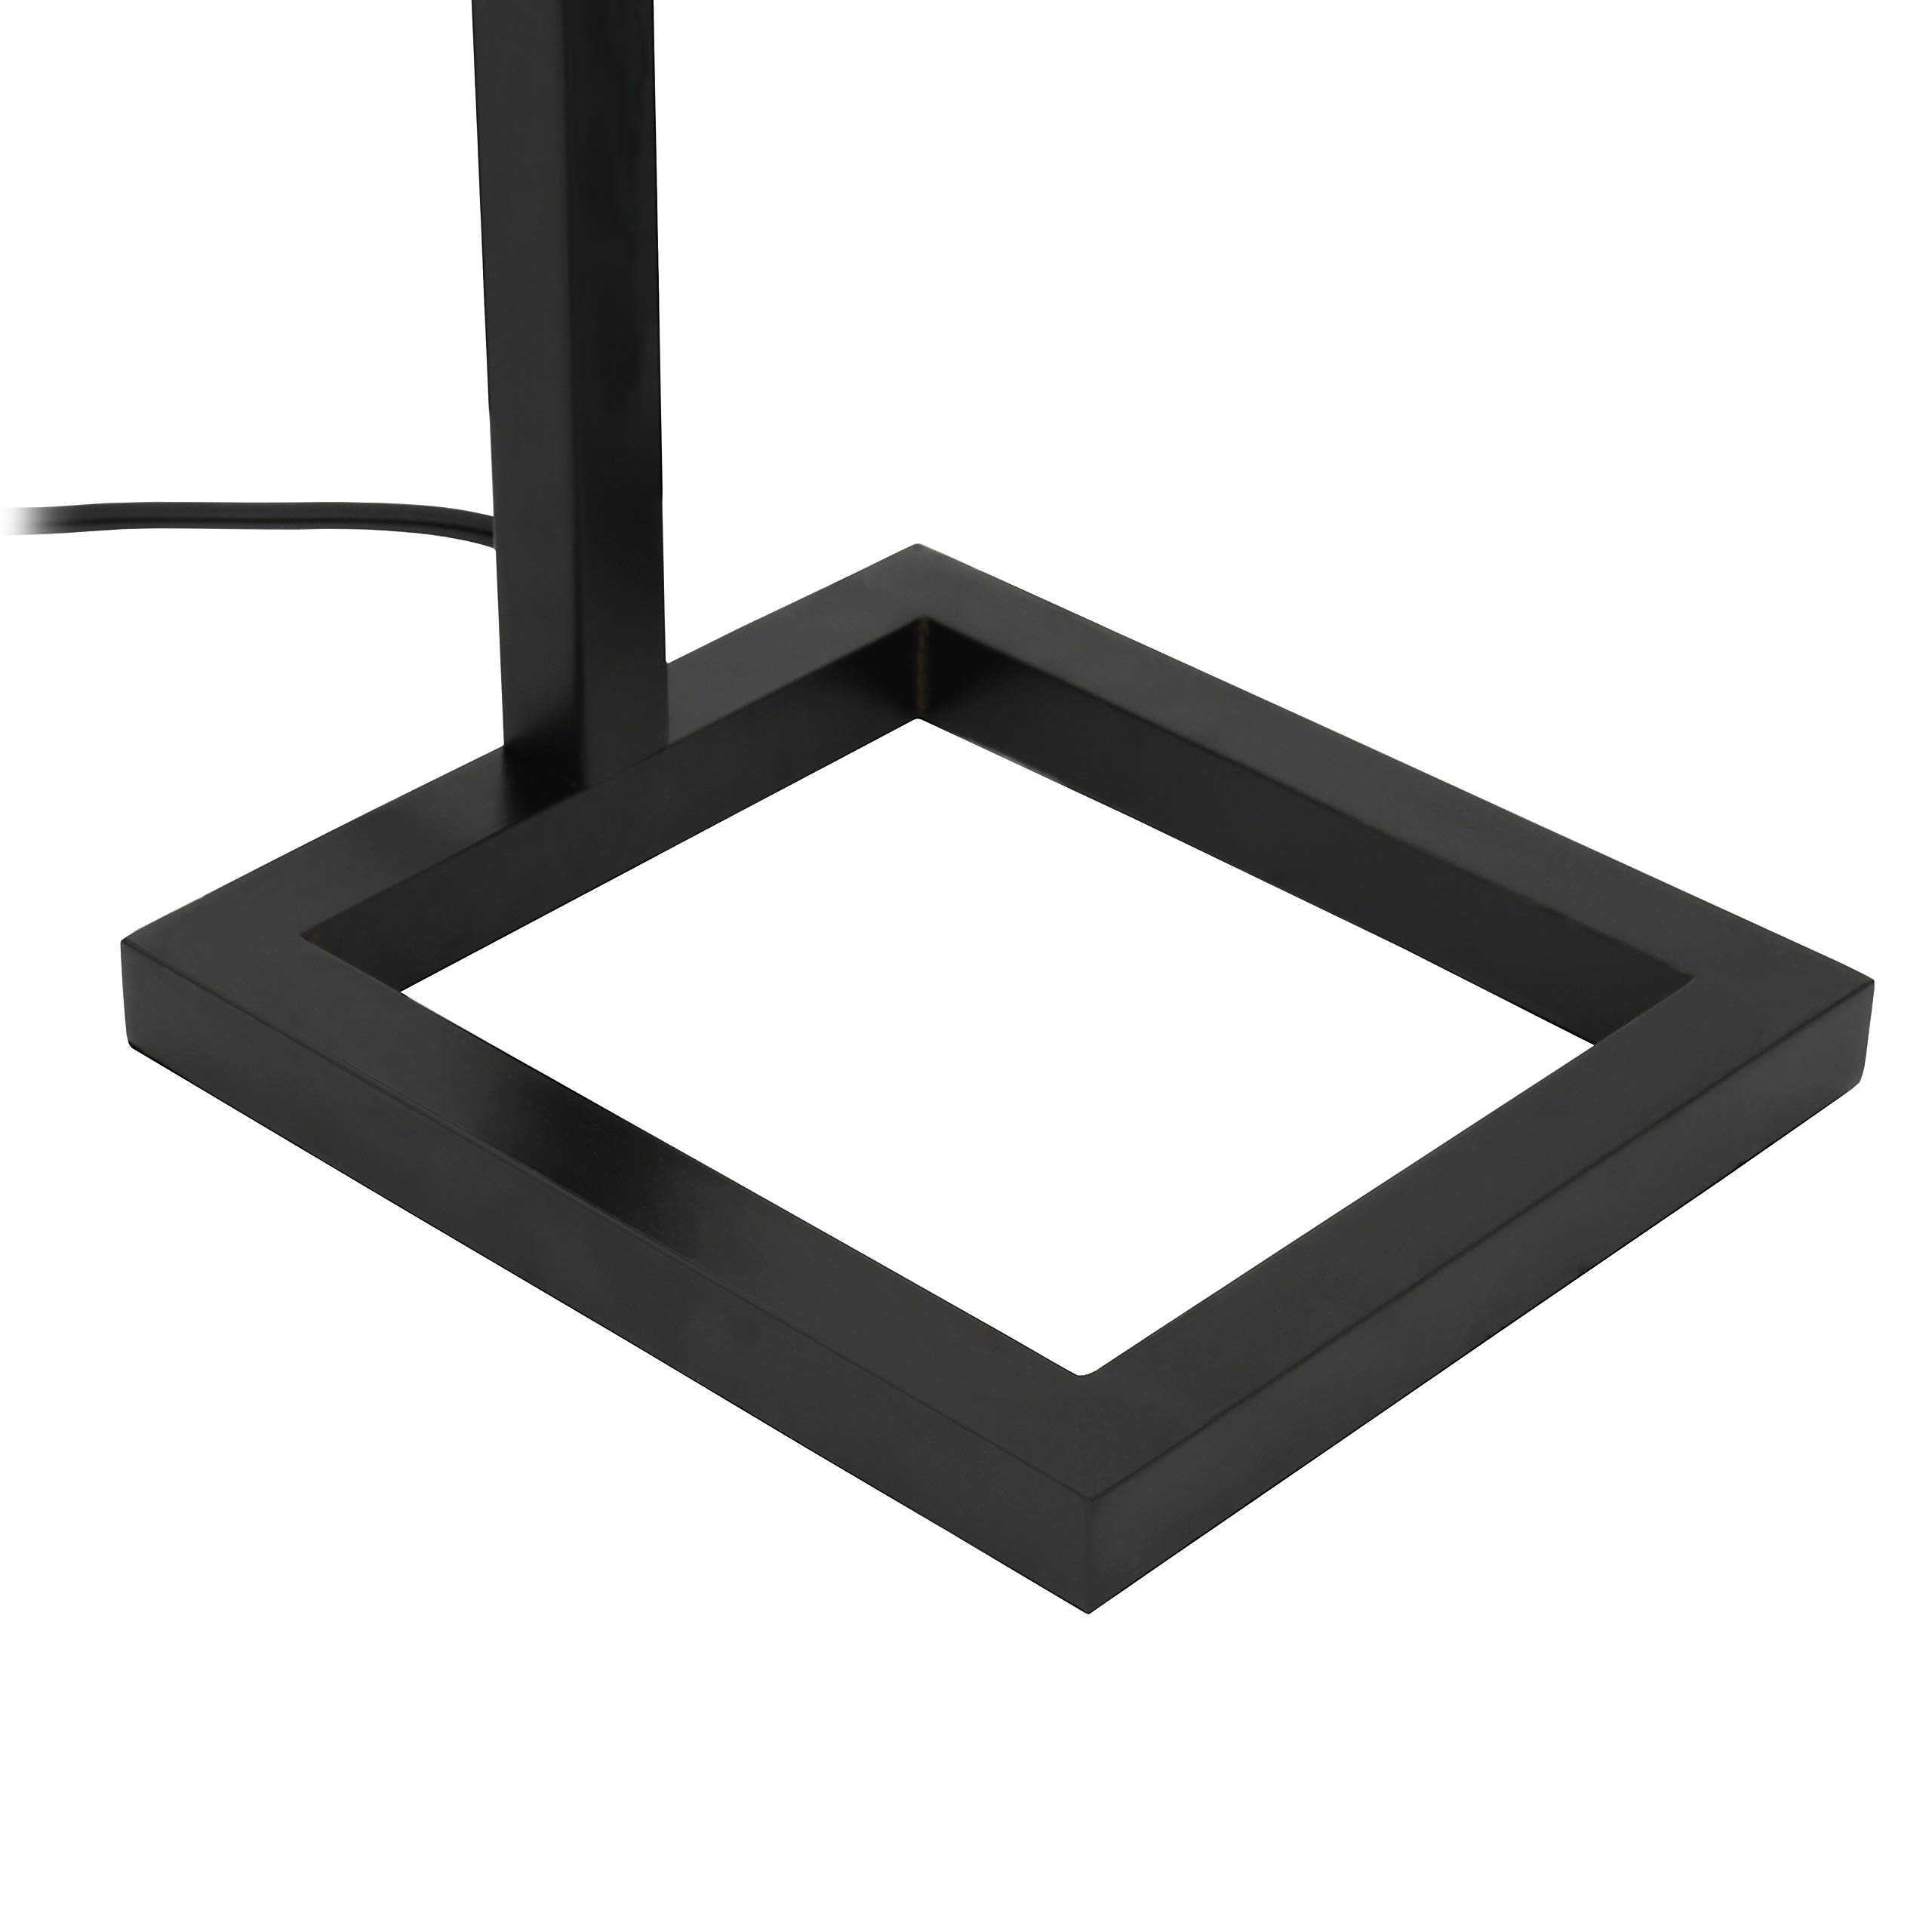 Henn&Hart FL0014 Modern Farmhouse seeded Task Lamp, One Size Black by Henn&Hart (Image #5)